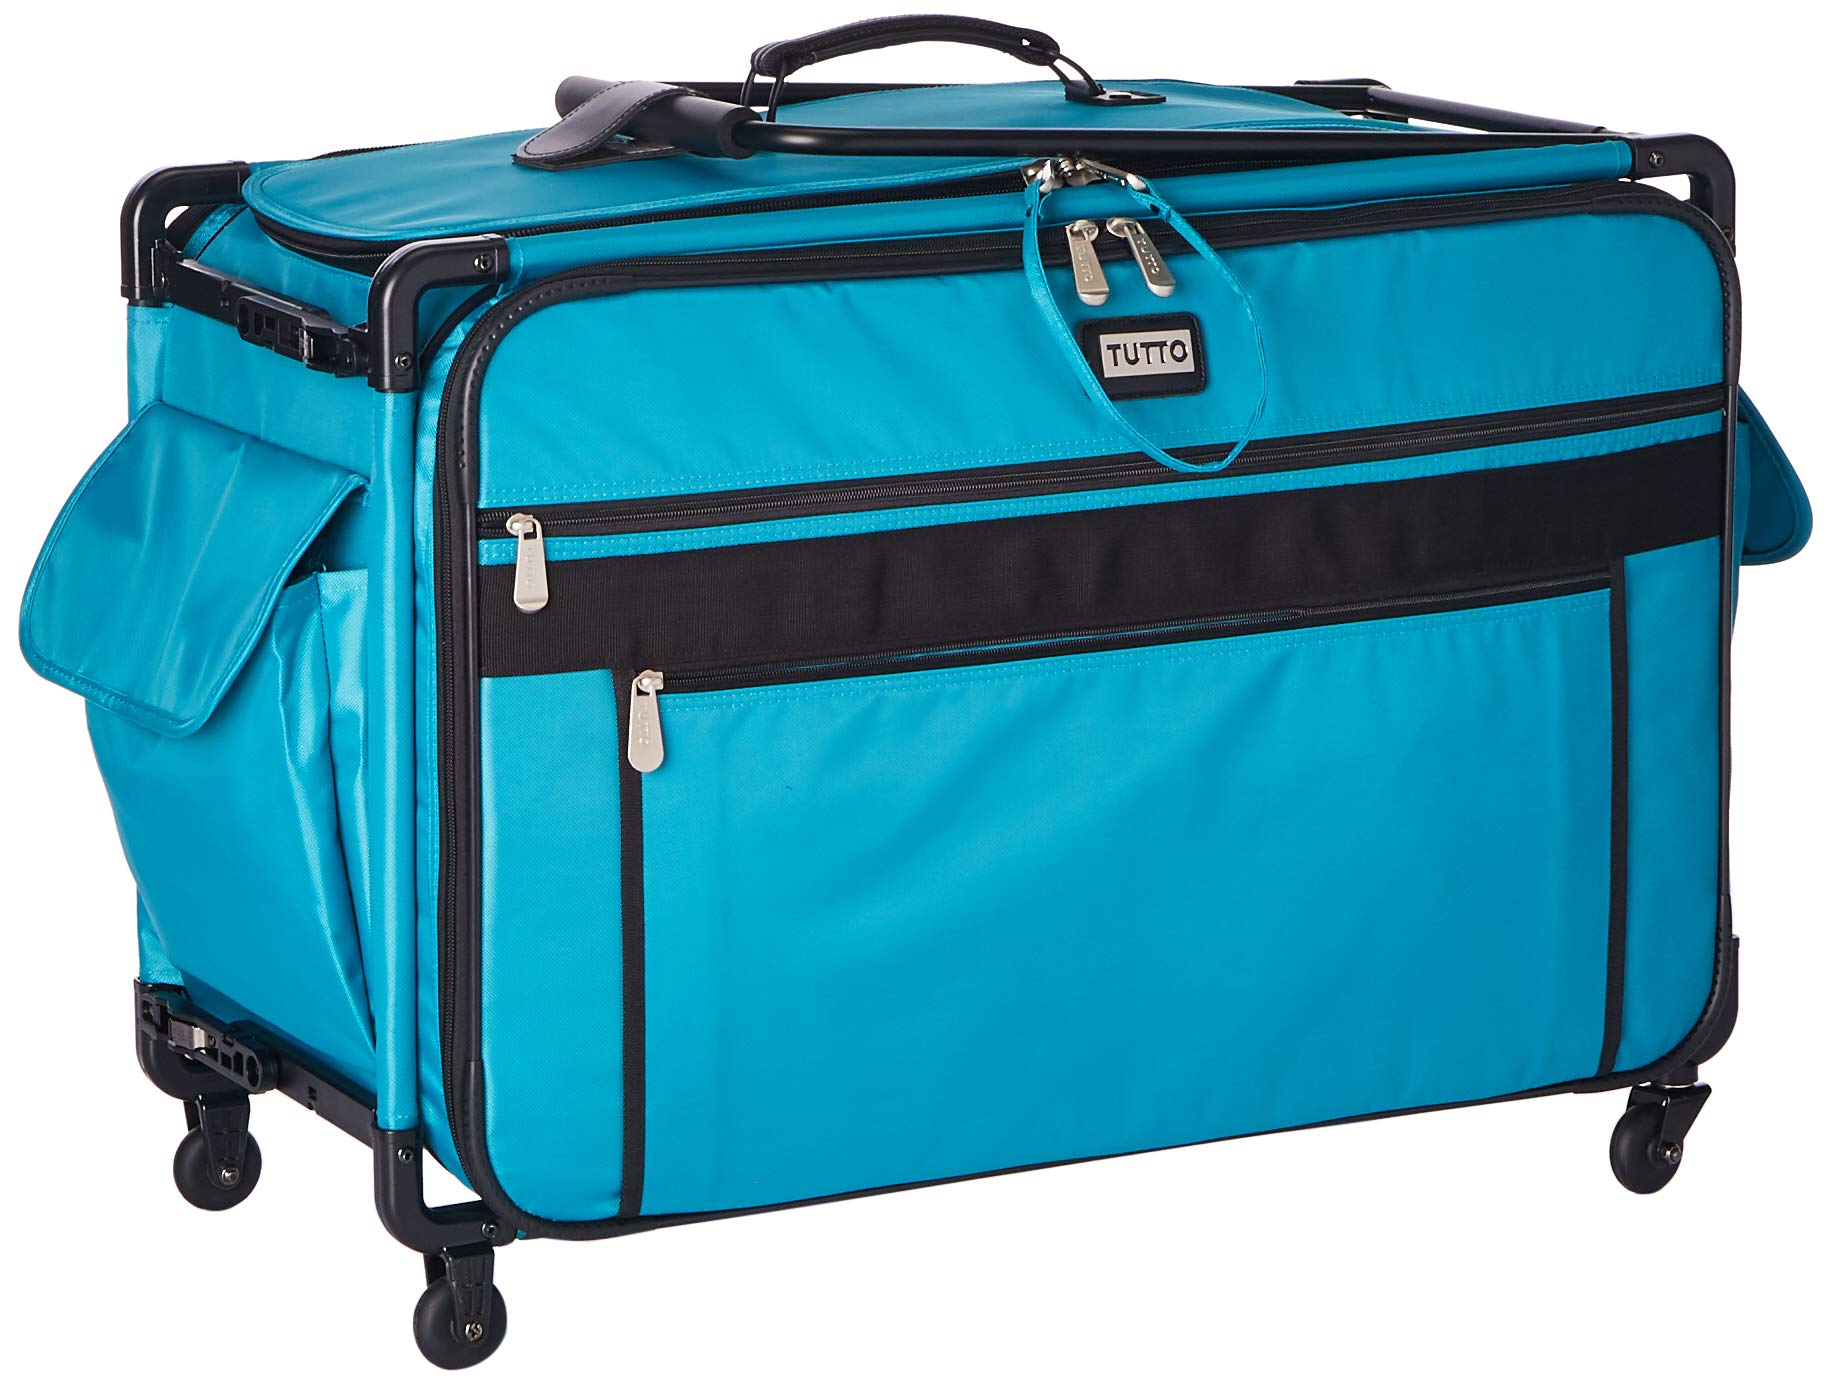 Tutto Monster Machine on Wheels Sewing Machine Case, 2XL Turquoise by Tutto